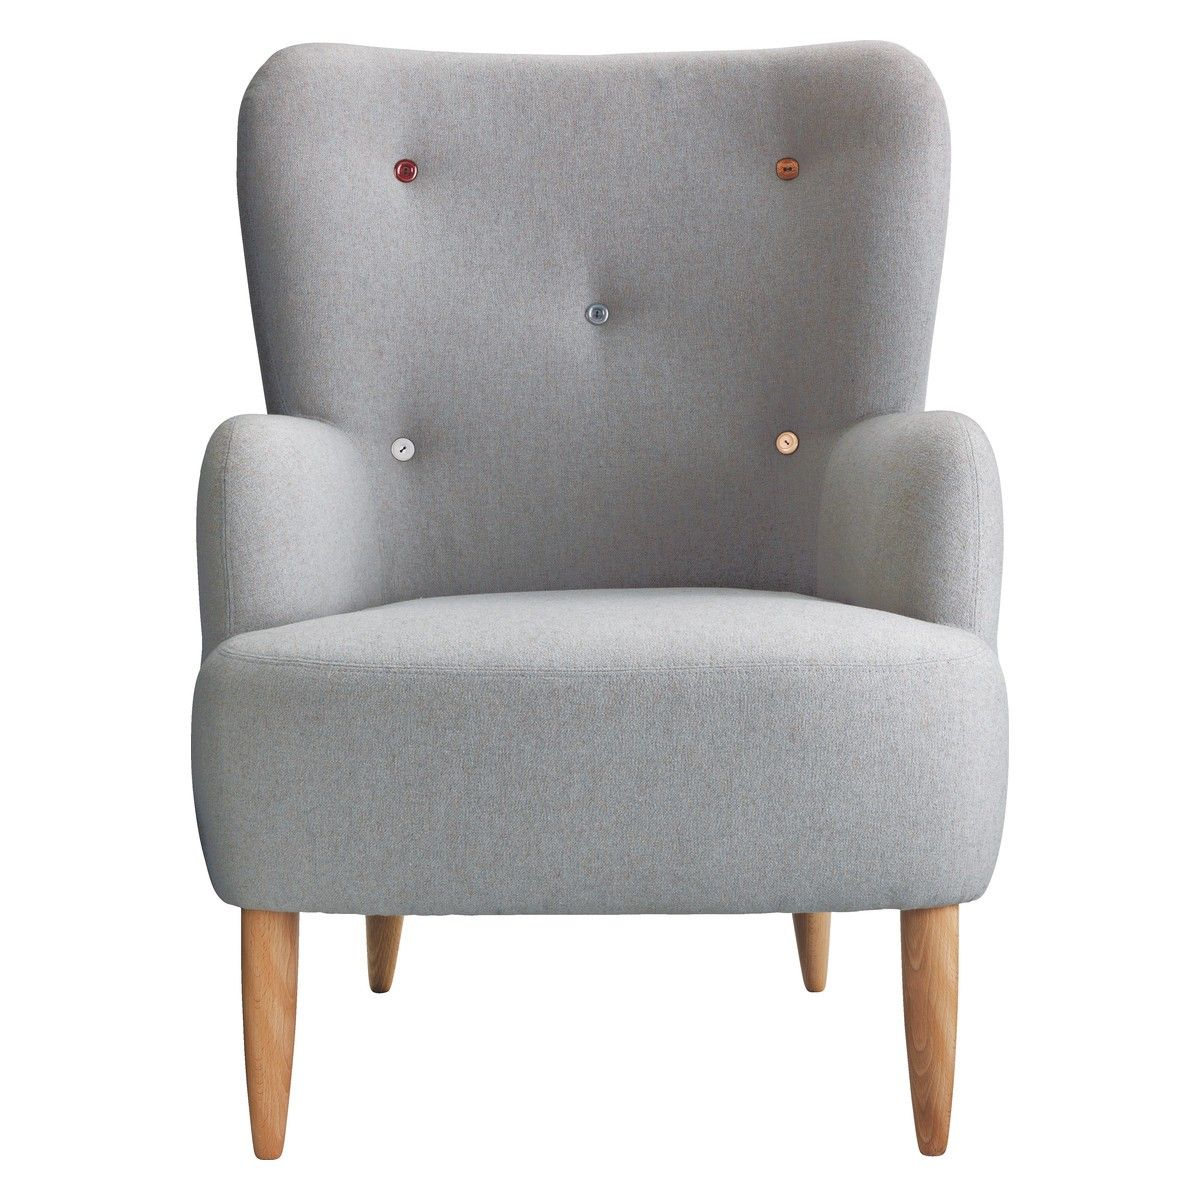 WILMOT Grey Wool Mix Armchair With Multi Coloured Buttons | Buy Now At  Habitat UK